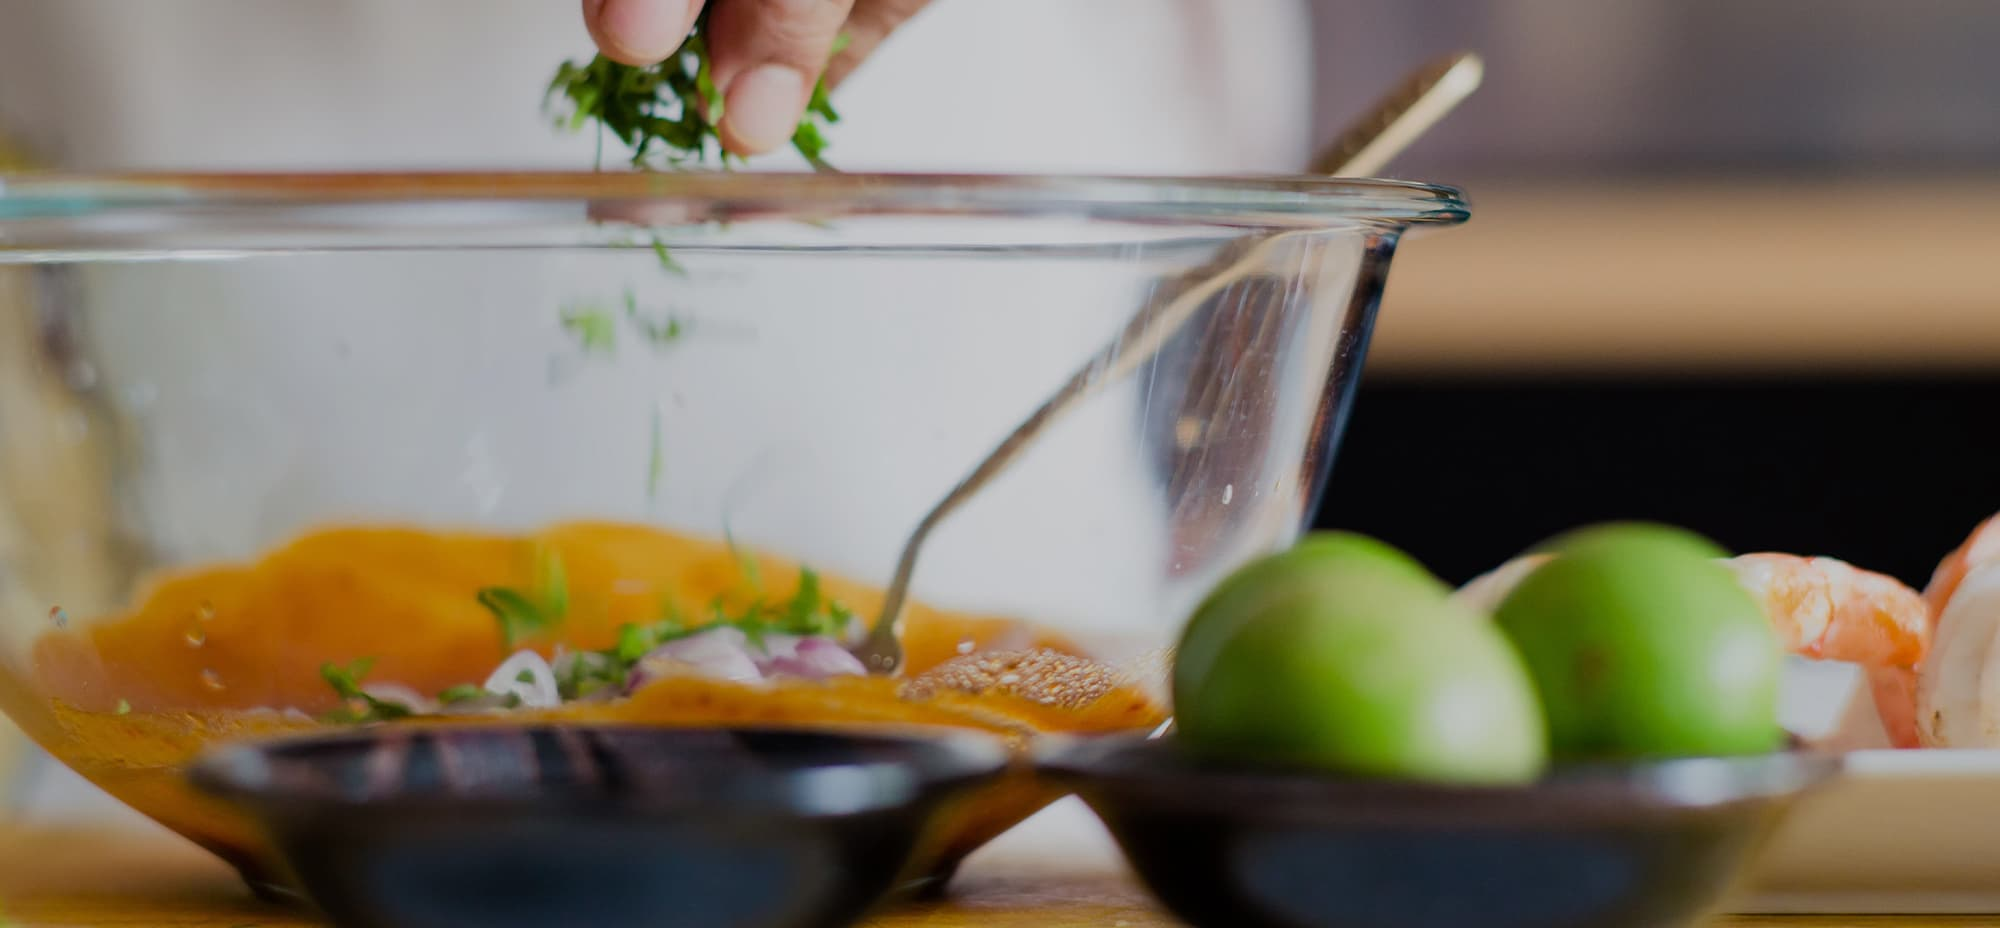 Image of a person adding fresh herbs to a bowl